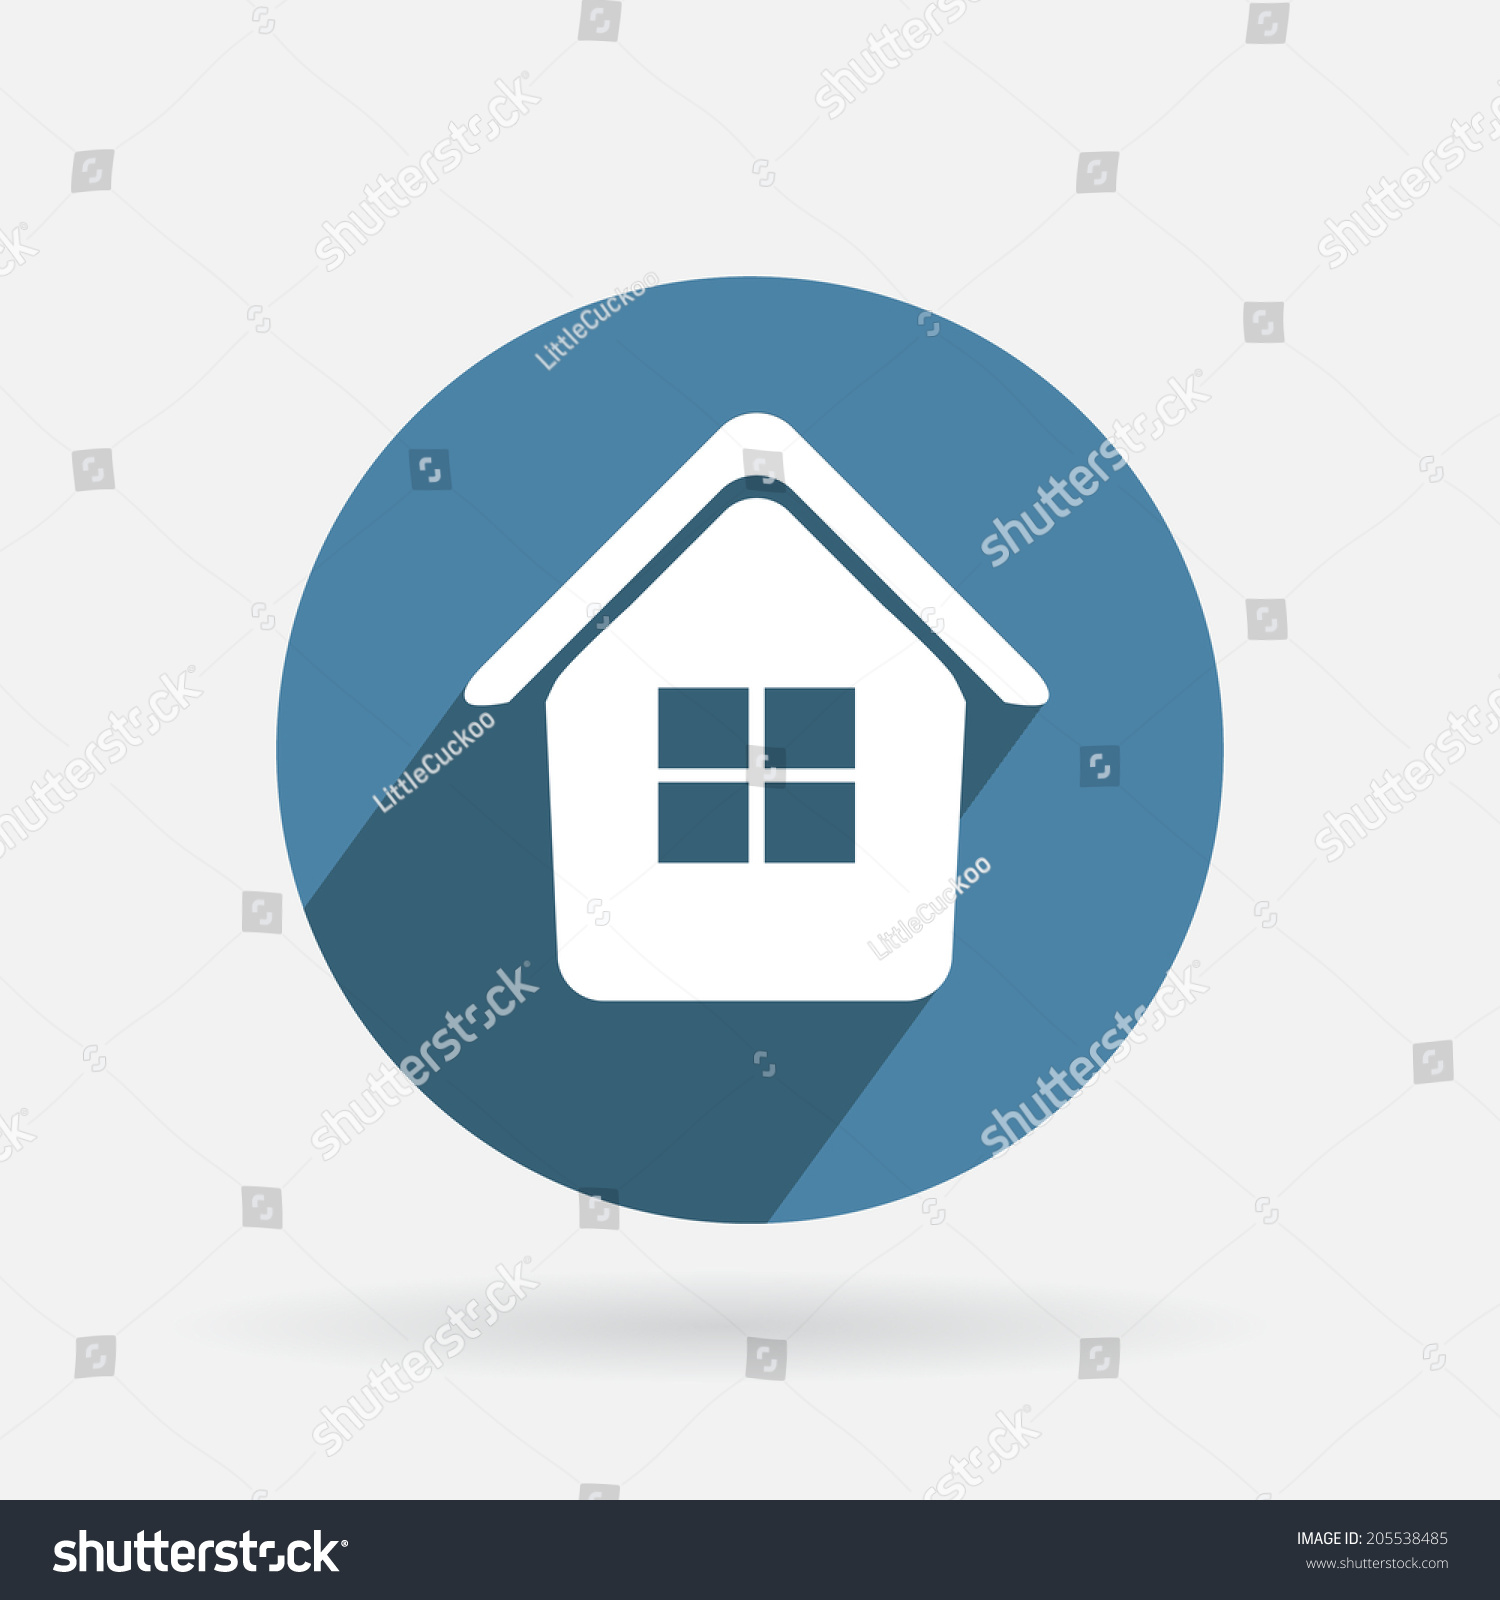 Circle Blue Icon Shadow Icon Home Stock Vector (Royalty Free